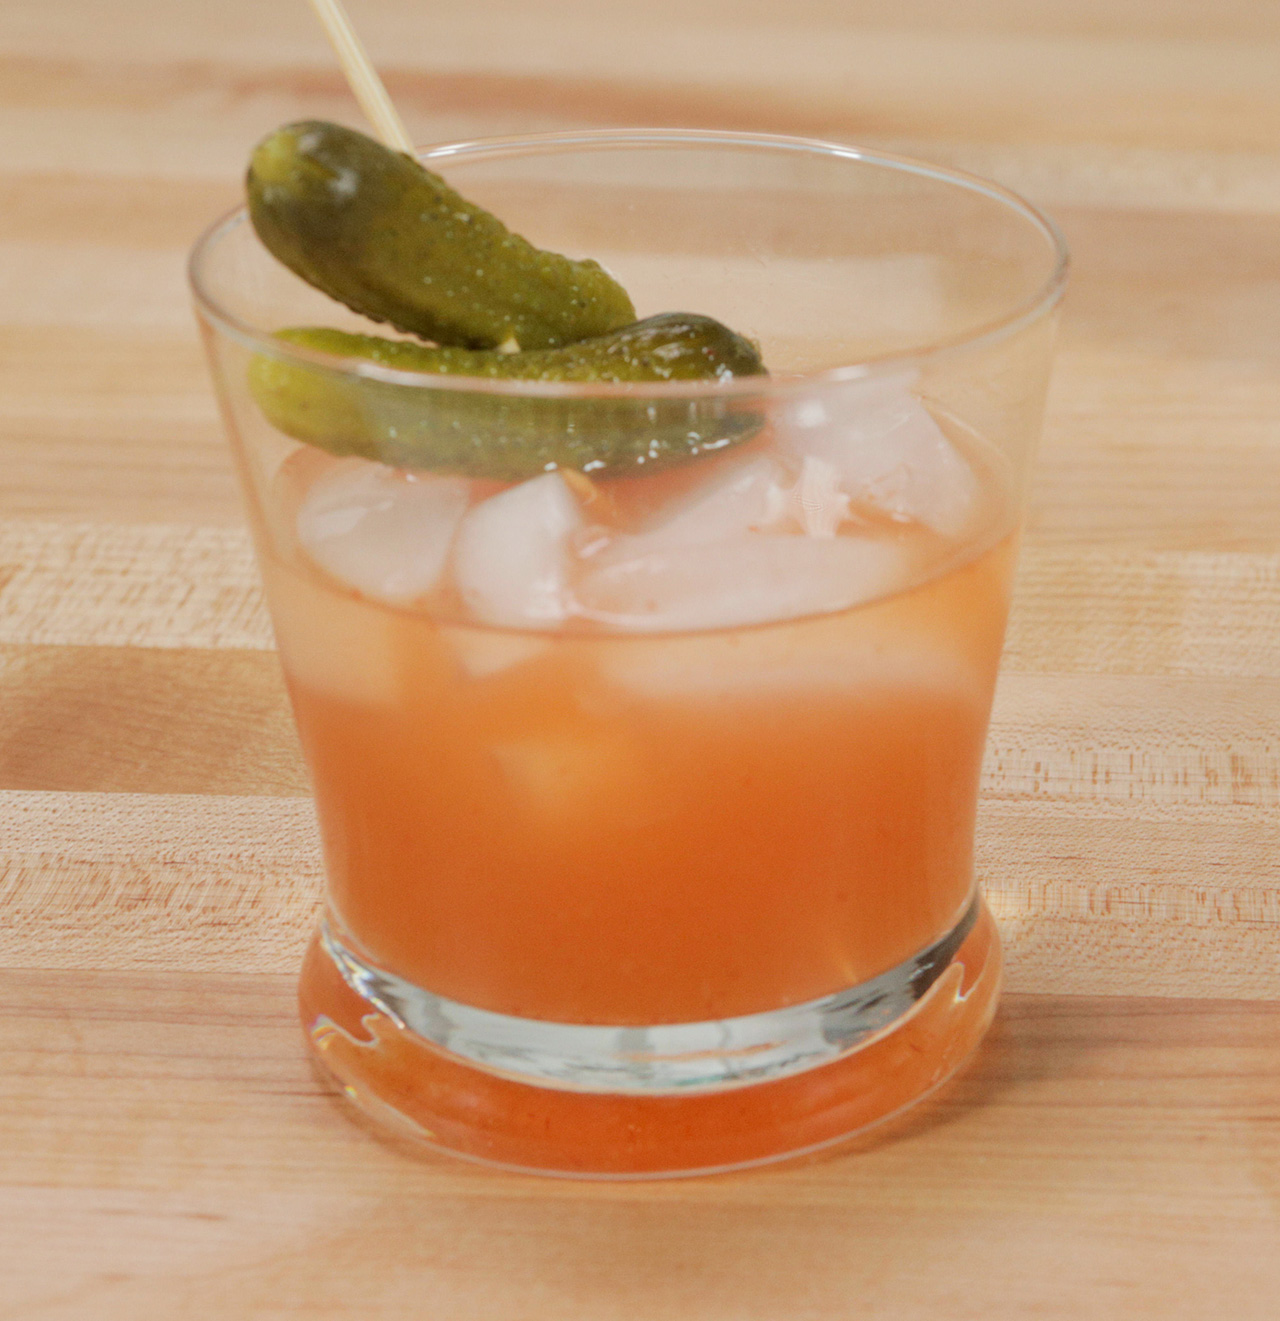 Pickled Whiskey Cocktail